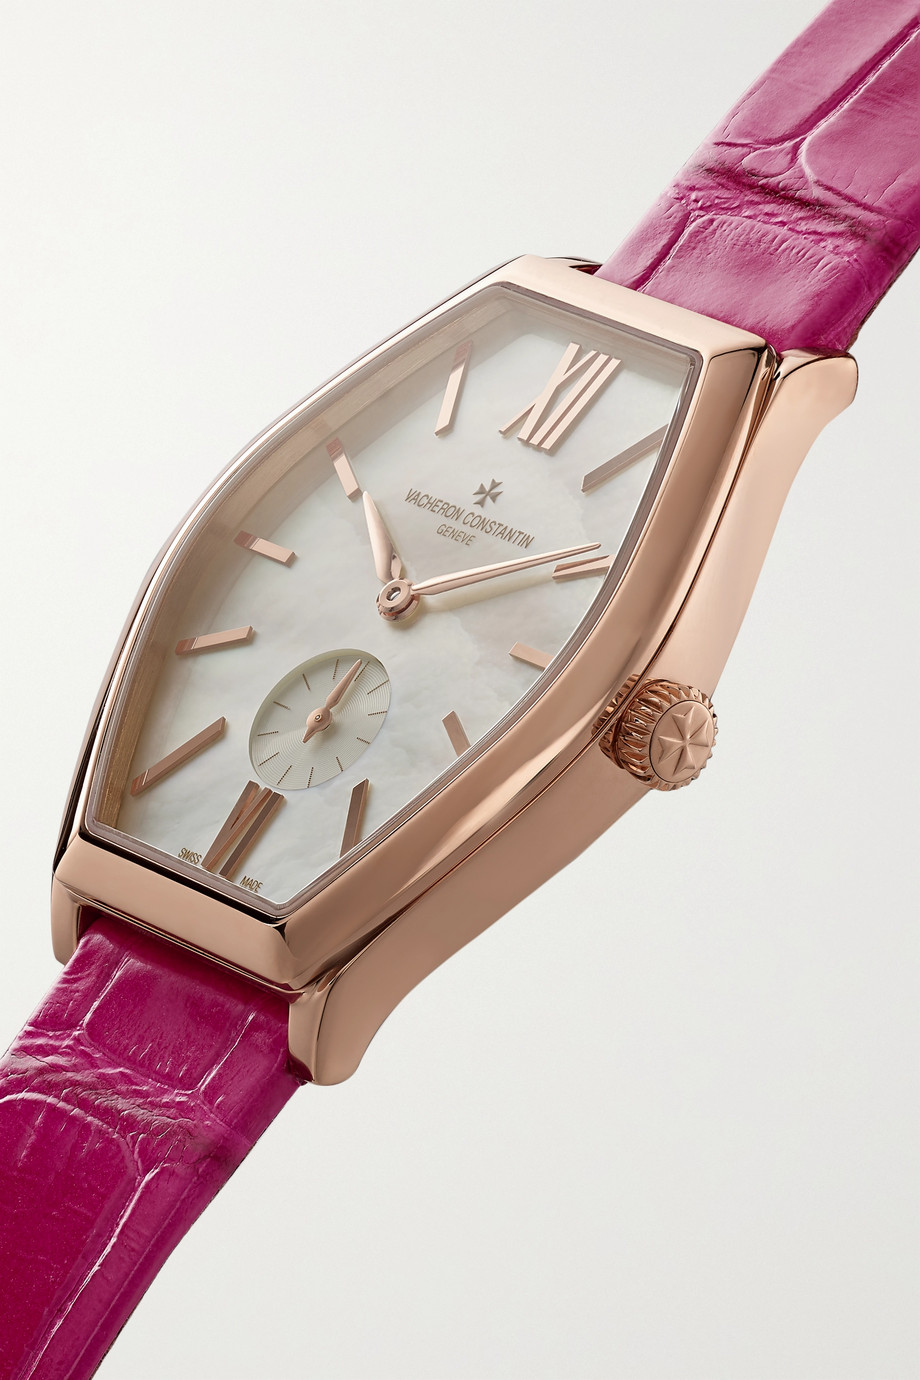 Vacheron Constantin Malte Hand-Wound 34.4mm 18-karat pink gold and alligator watch